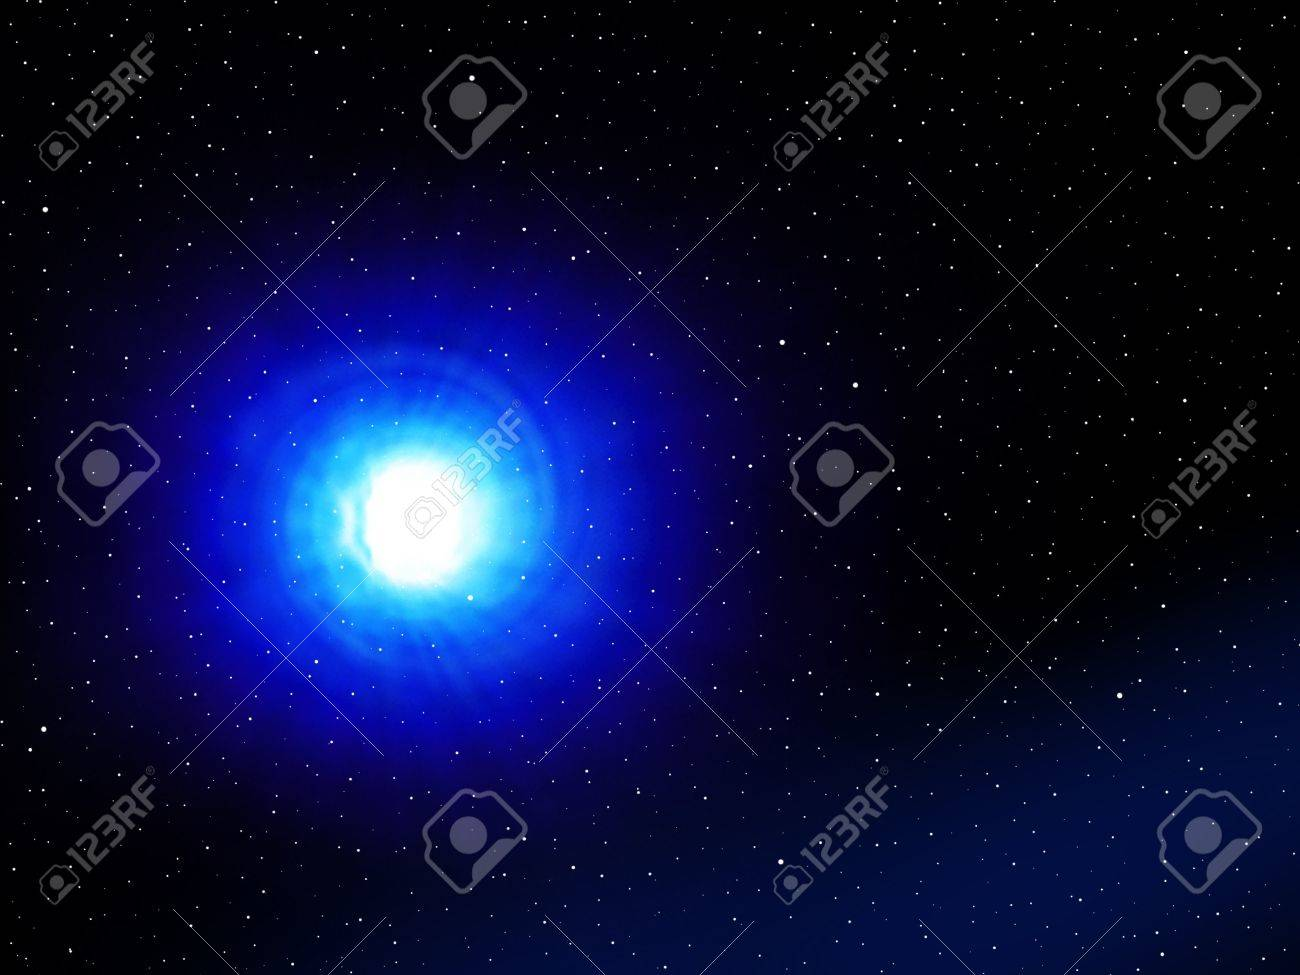 Blue wormhole in space in a fantasy galaxy. Stock Photo - 10775825